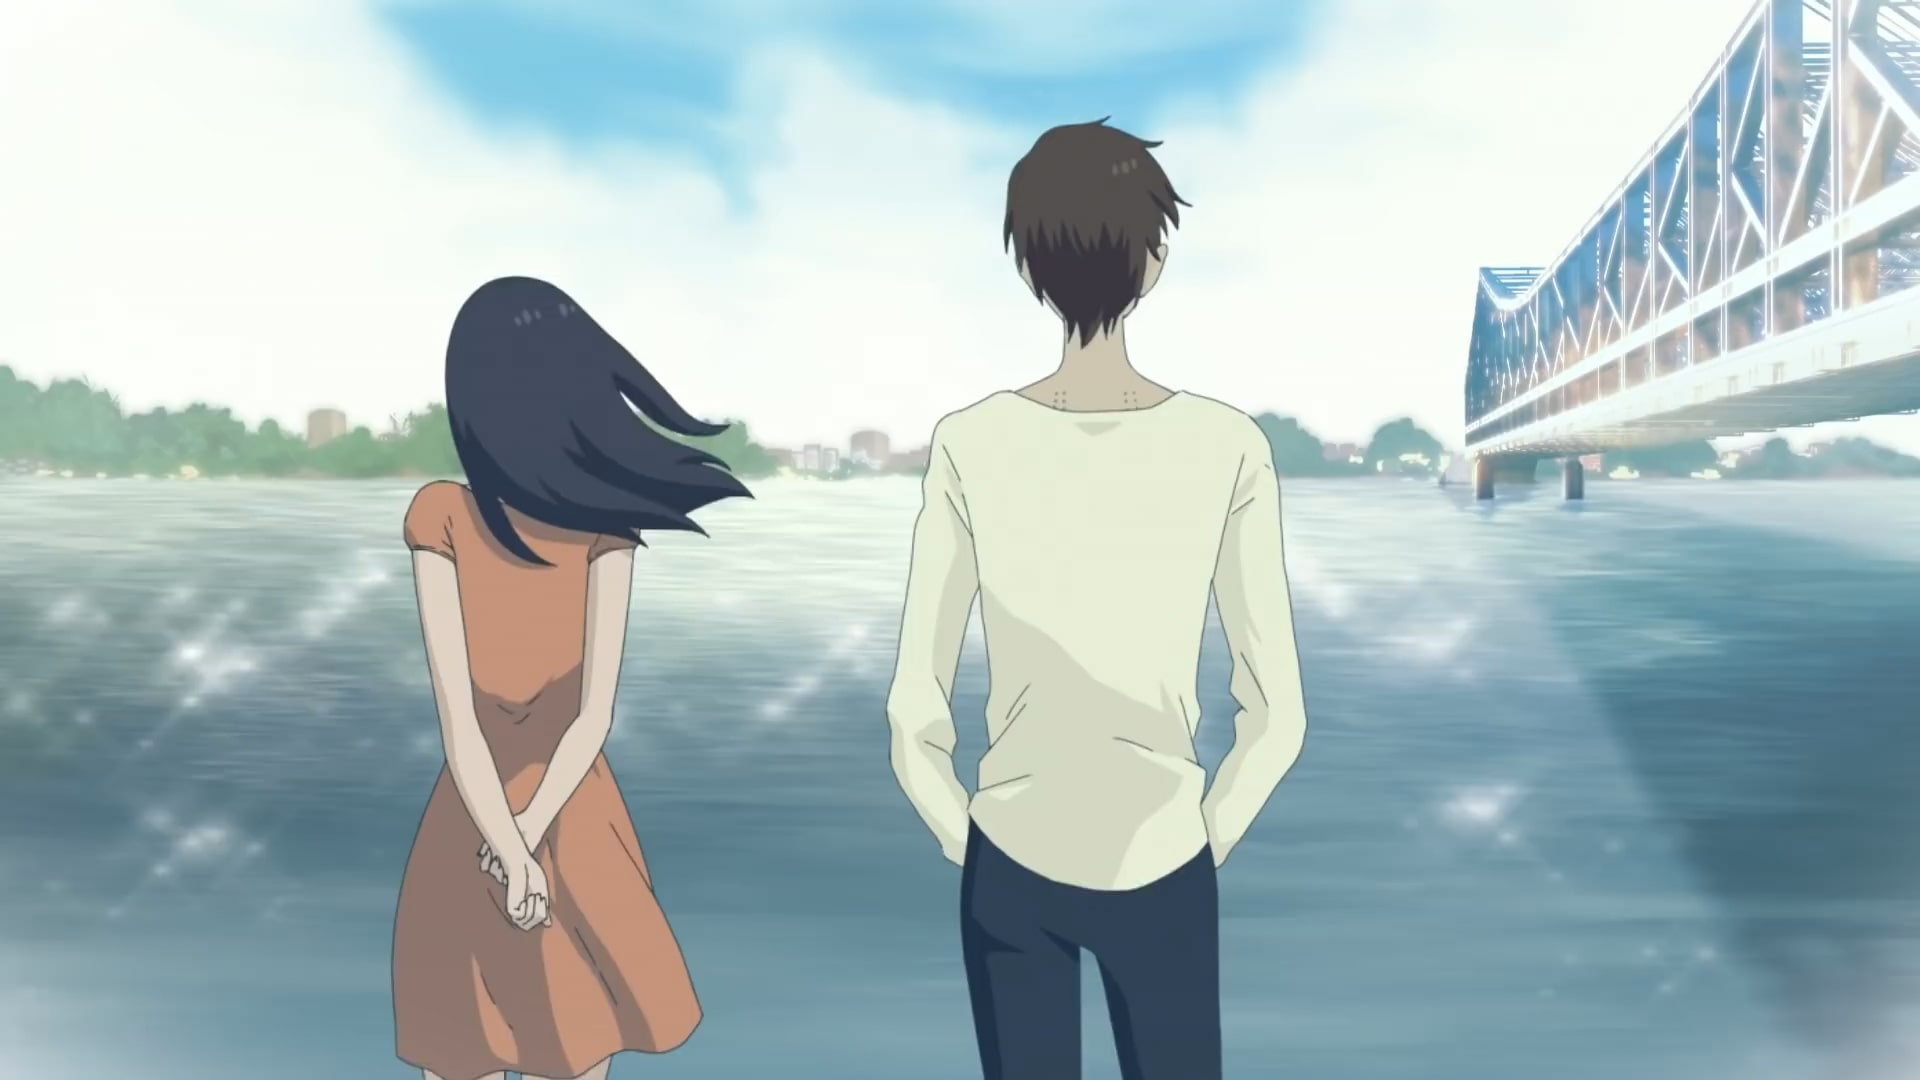 A woman and a man stand by the water near a bridge